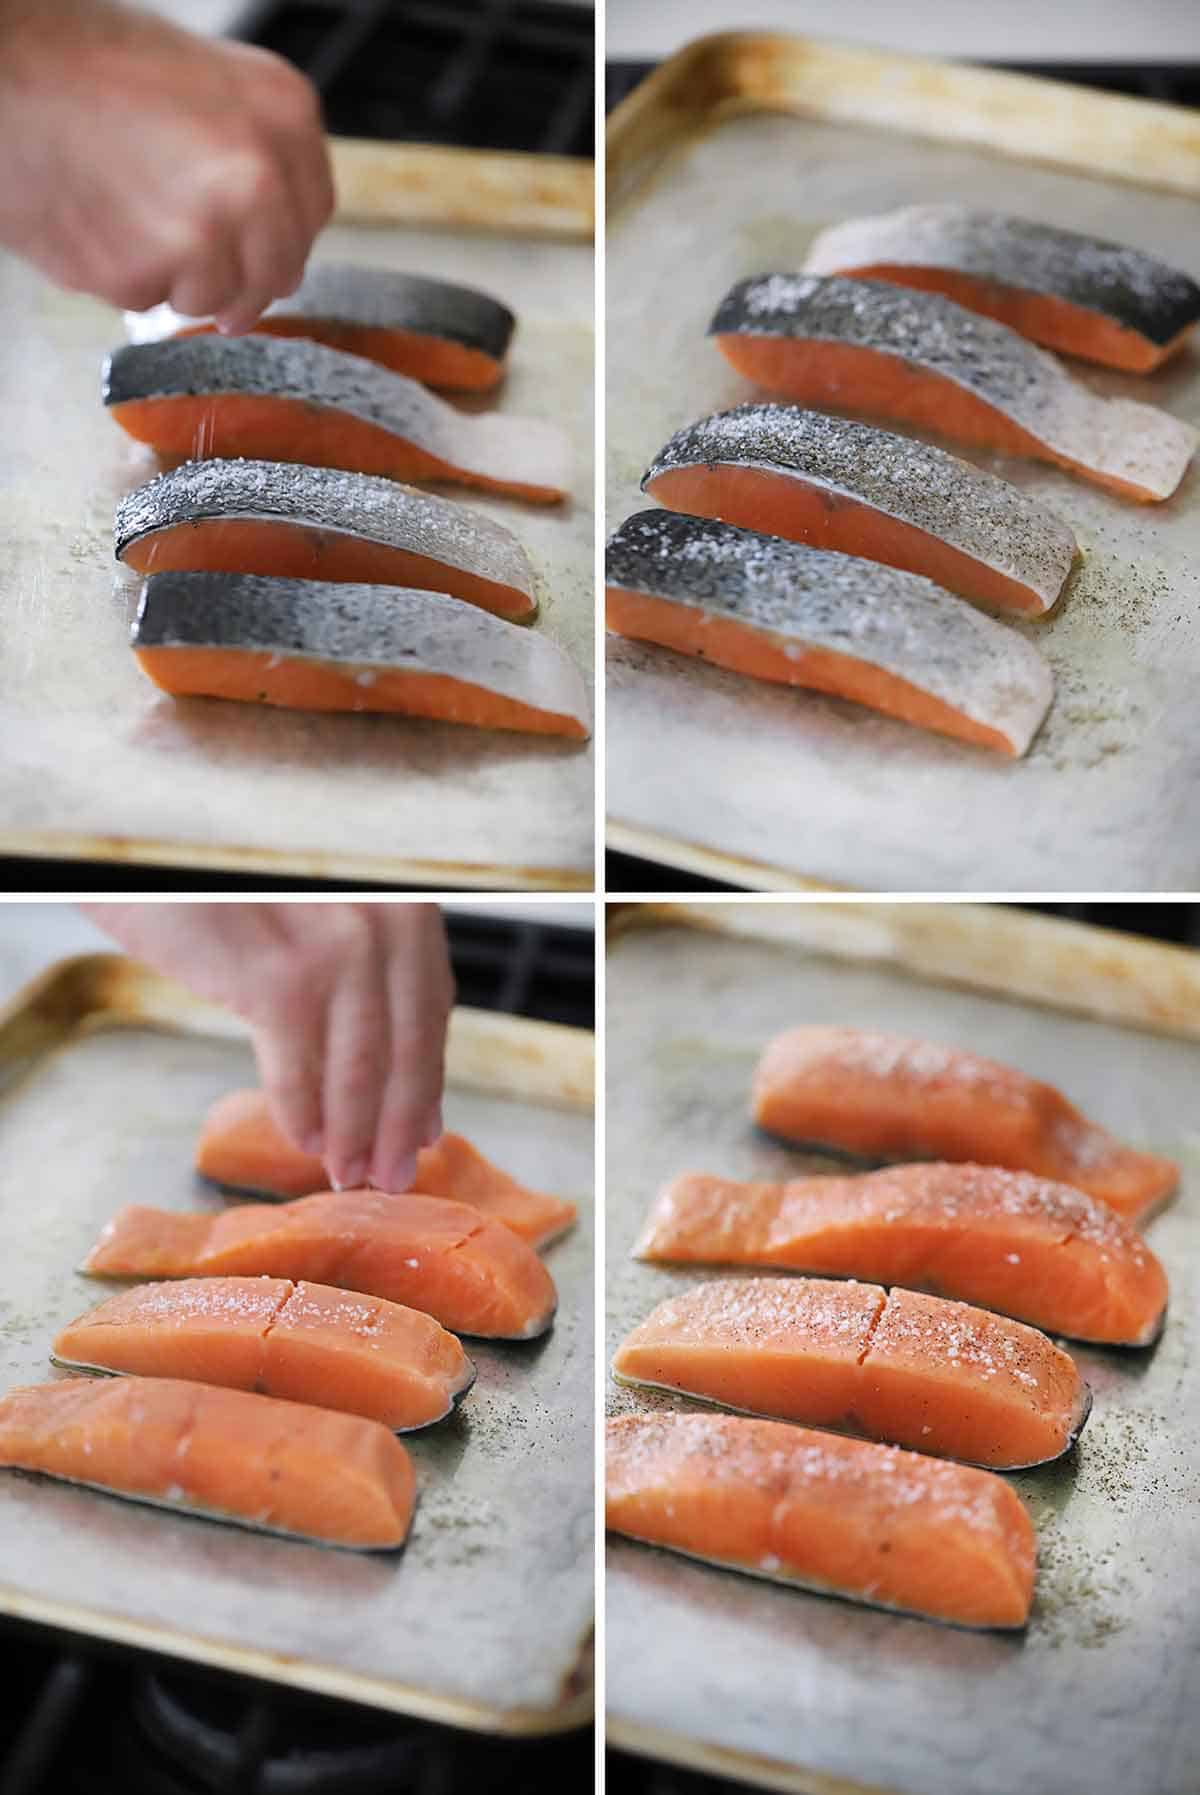 Process collage showing seasoning salmon with salt and pepper on both sides.